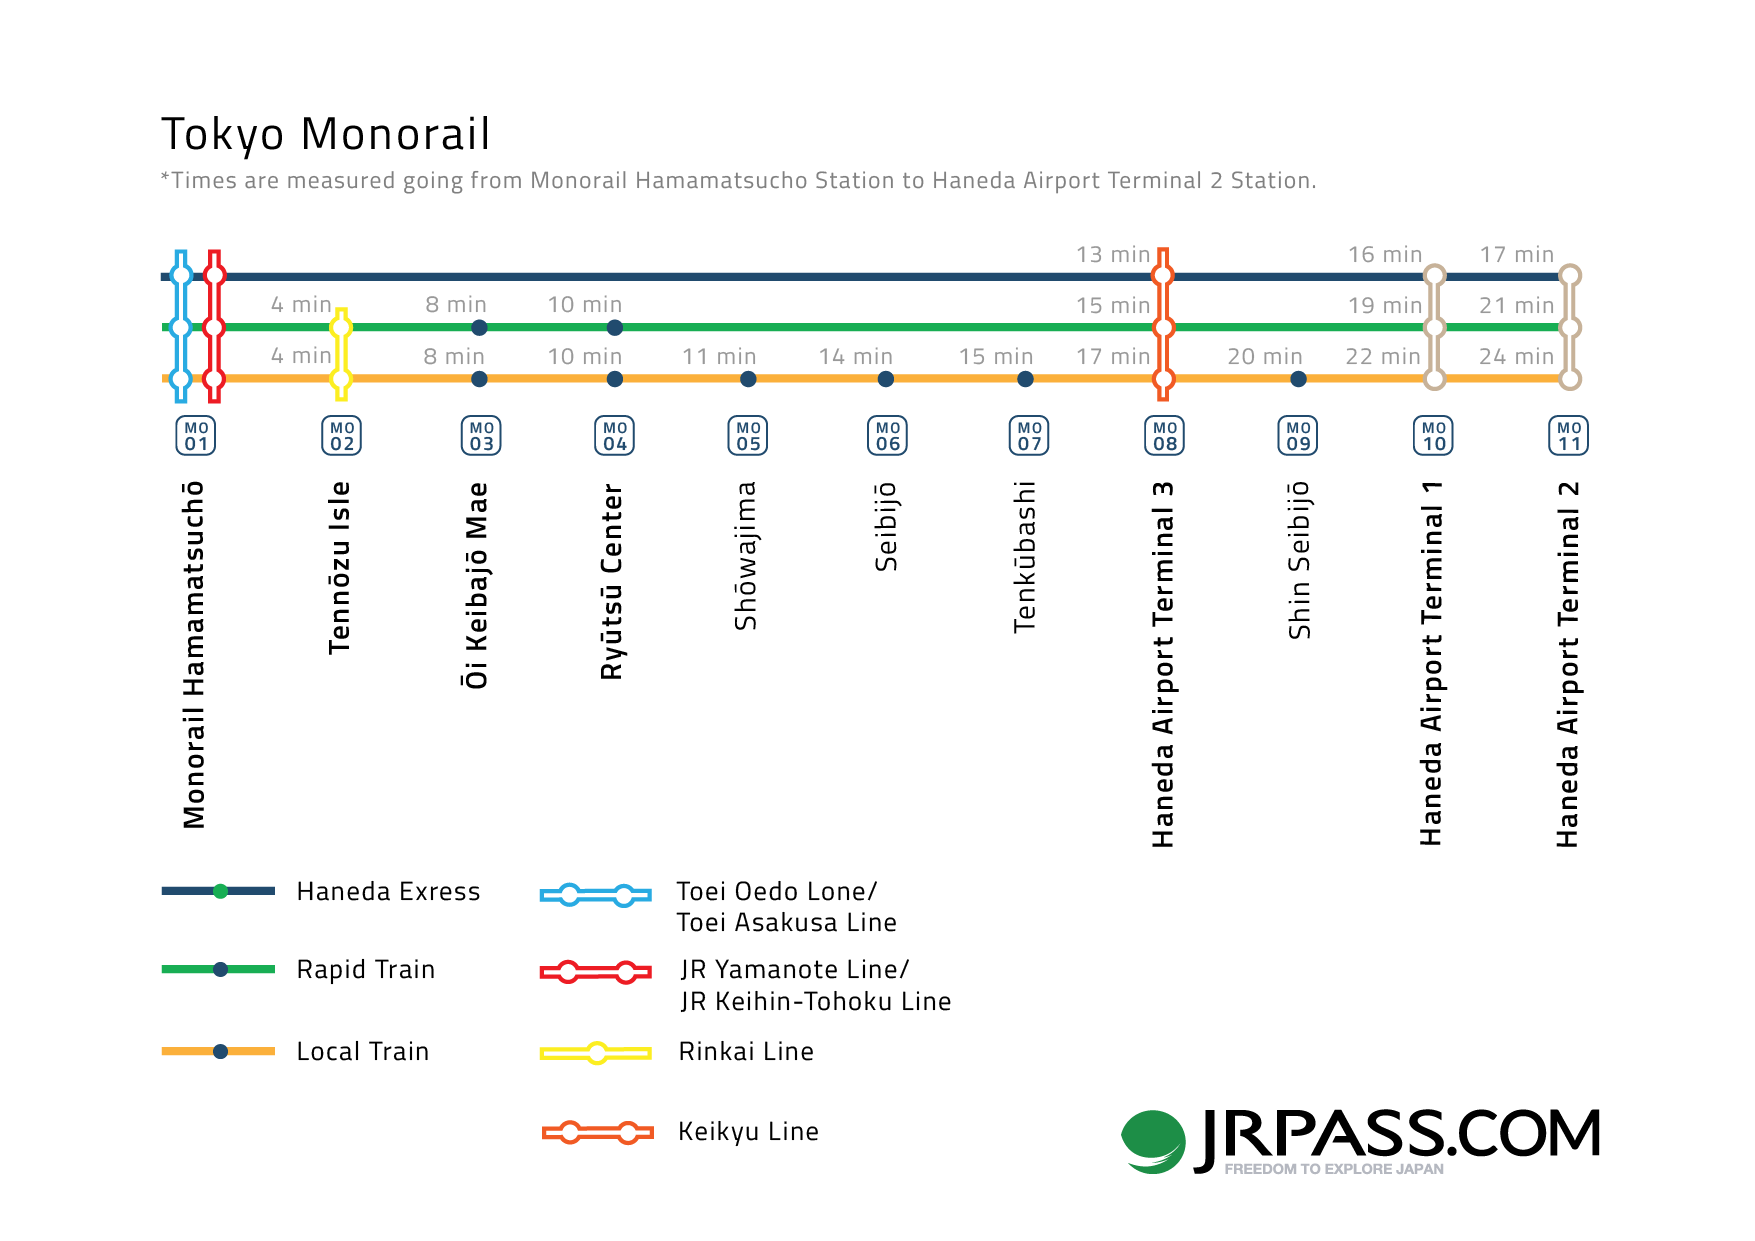 Tokyo Monorail Map by JRPass.com